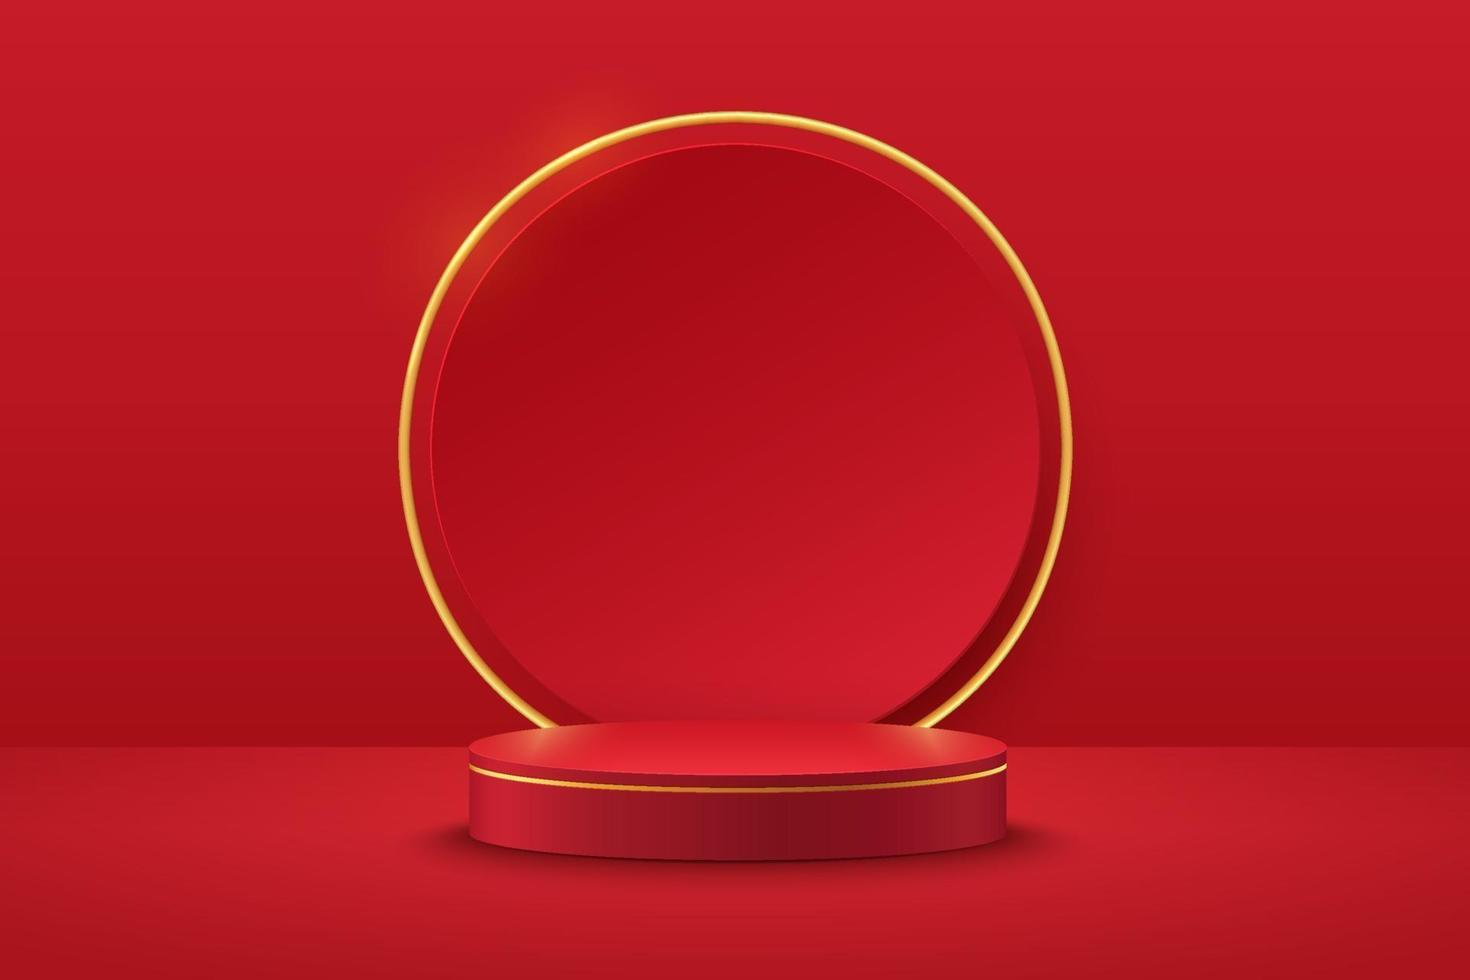 Modern red and gold cylinder pedestal podium. Red color minimal wall scene, Shiny golden circle backdrop. Vector rendering 3d shape, Product display presentation. Geometric platform. Abstract room.